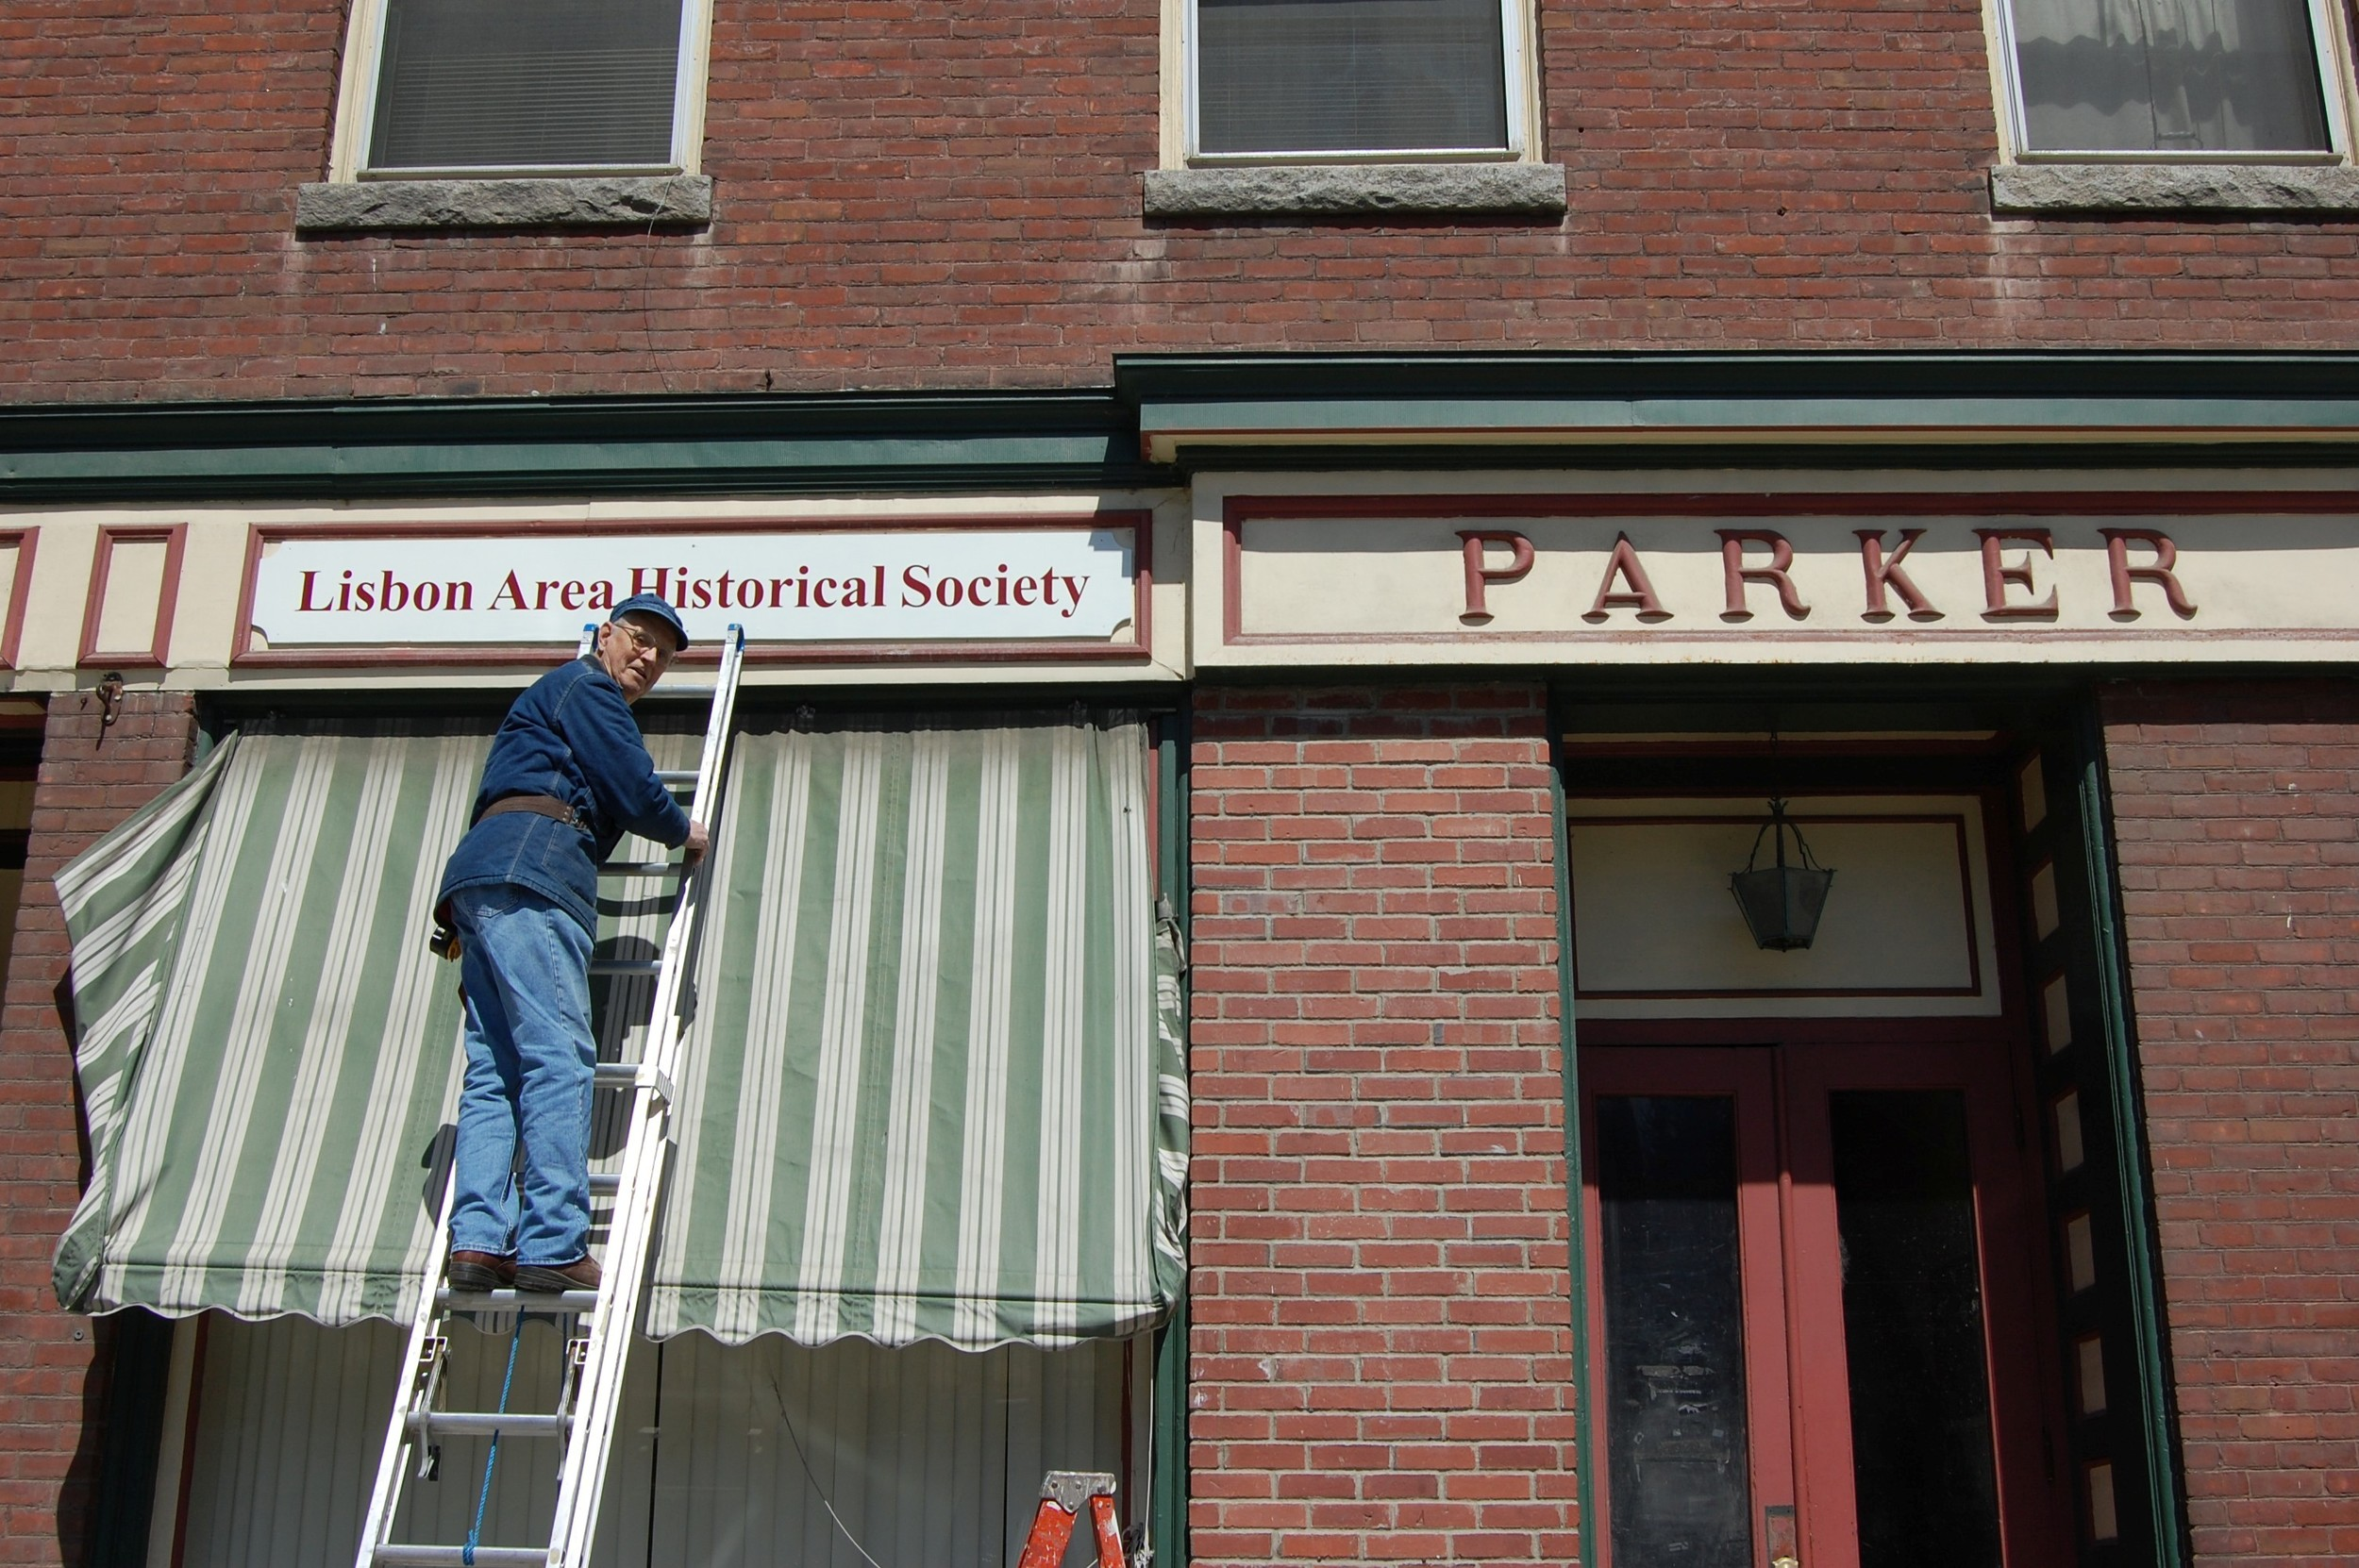 Installing our new museum sign